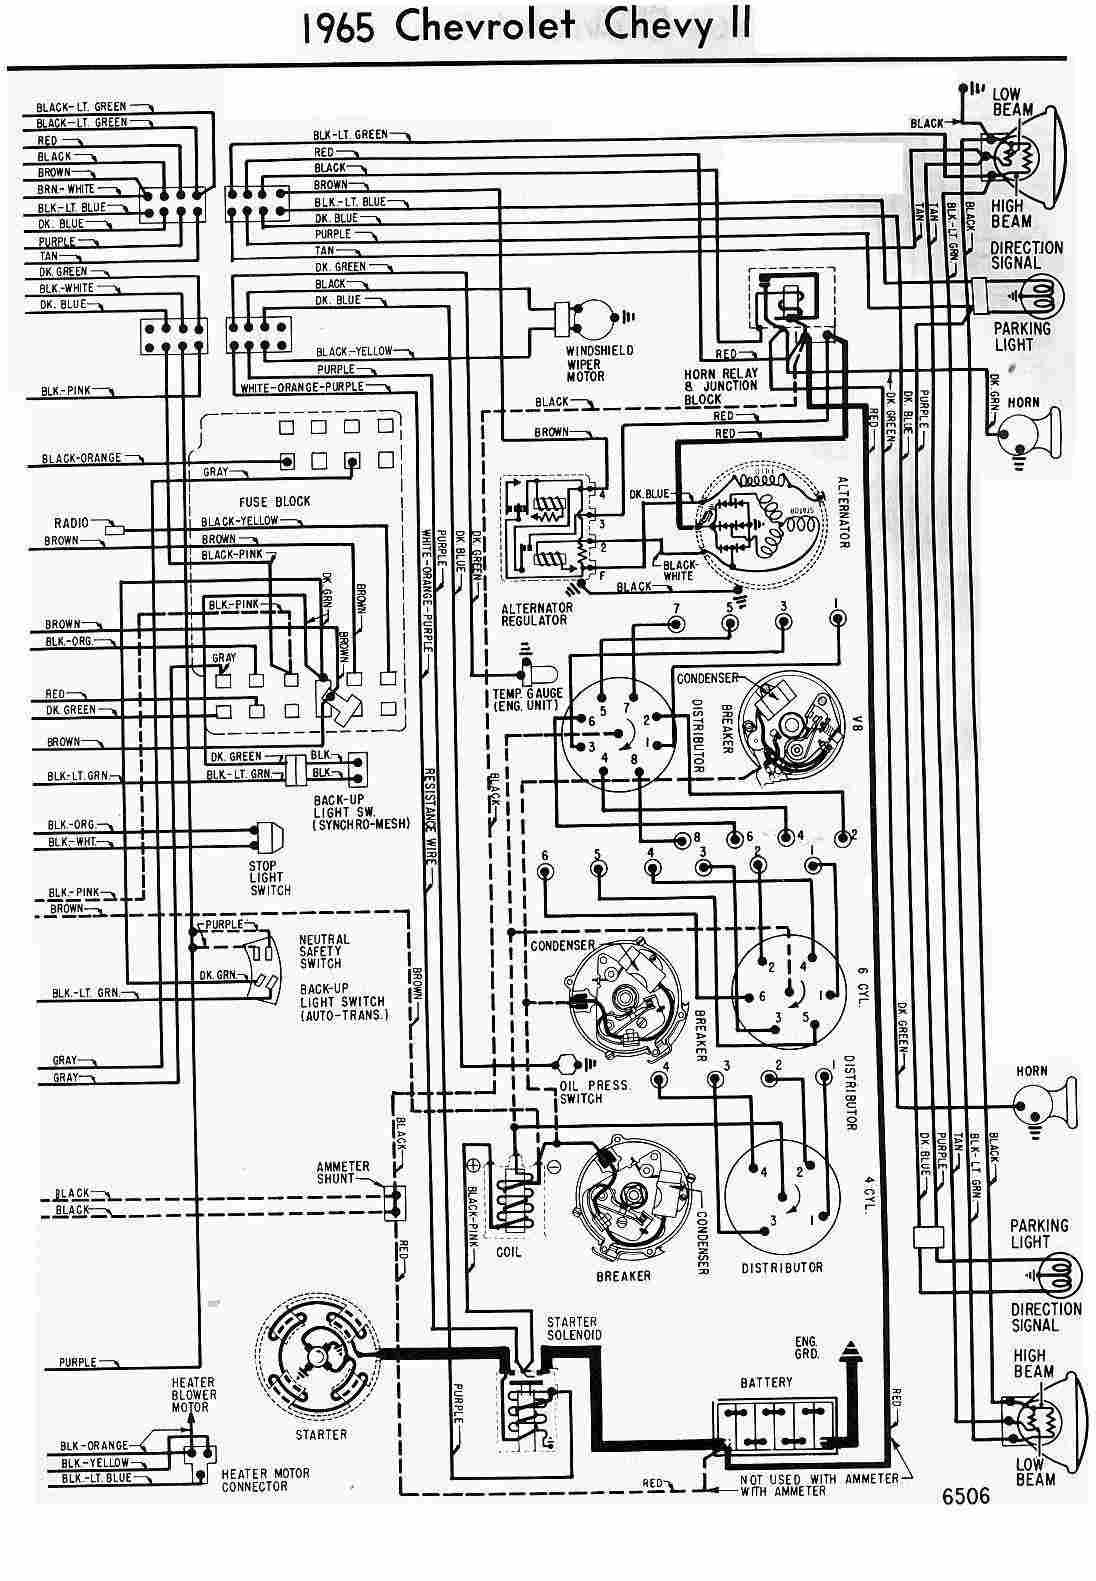 chevrolet car manuals, wiring diagrams pdf & fault codes gm wiring diagrams online chevrolet wiring diagrams download